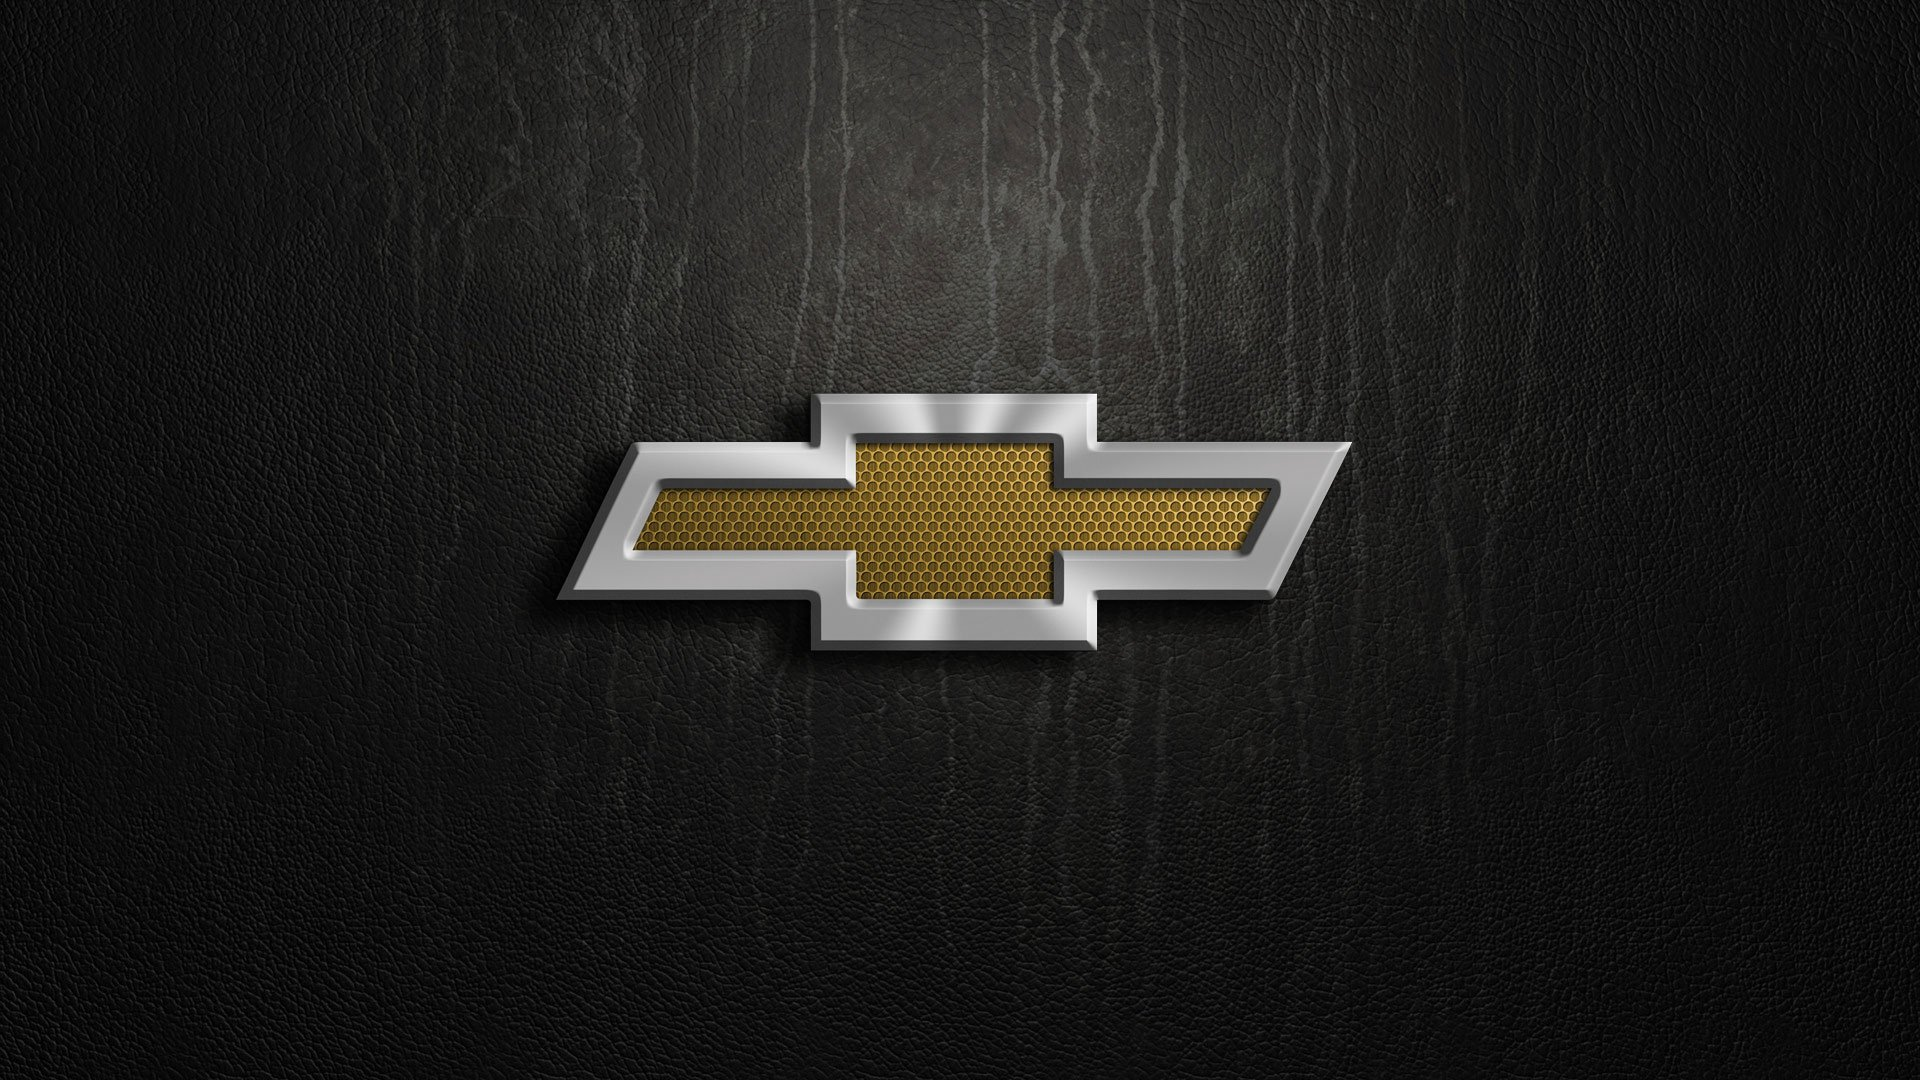 chevy logo wallpaper iphone 6